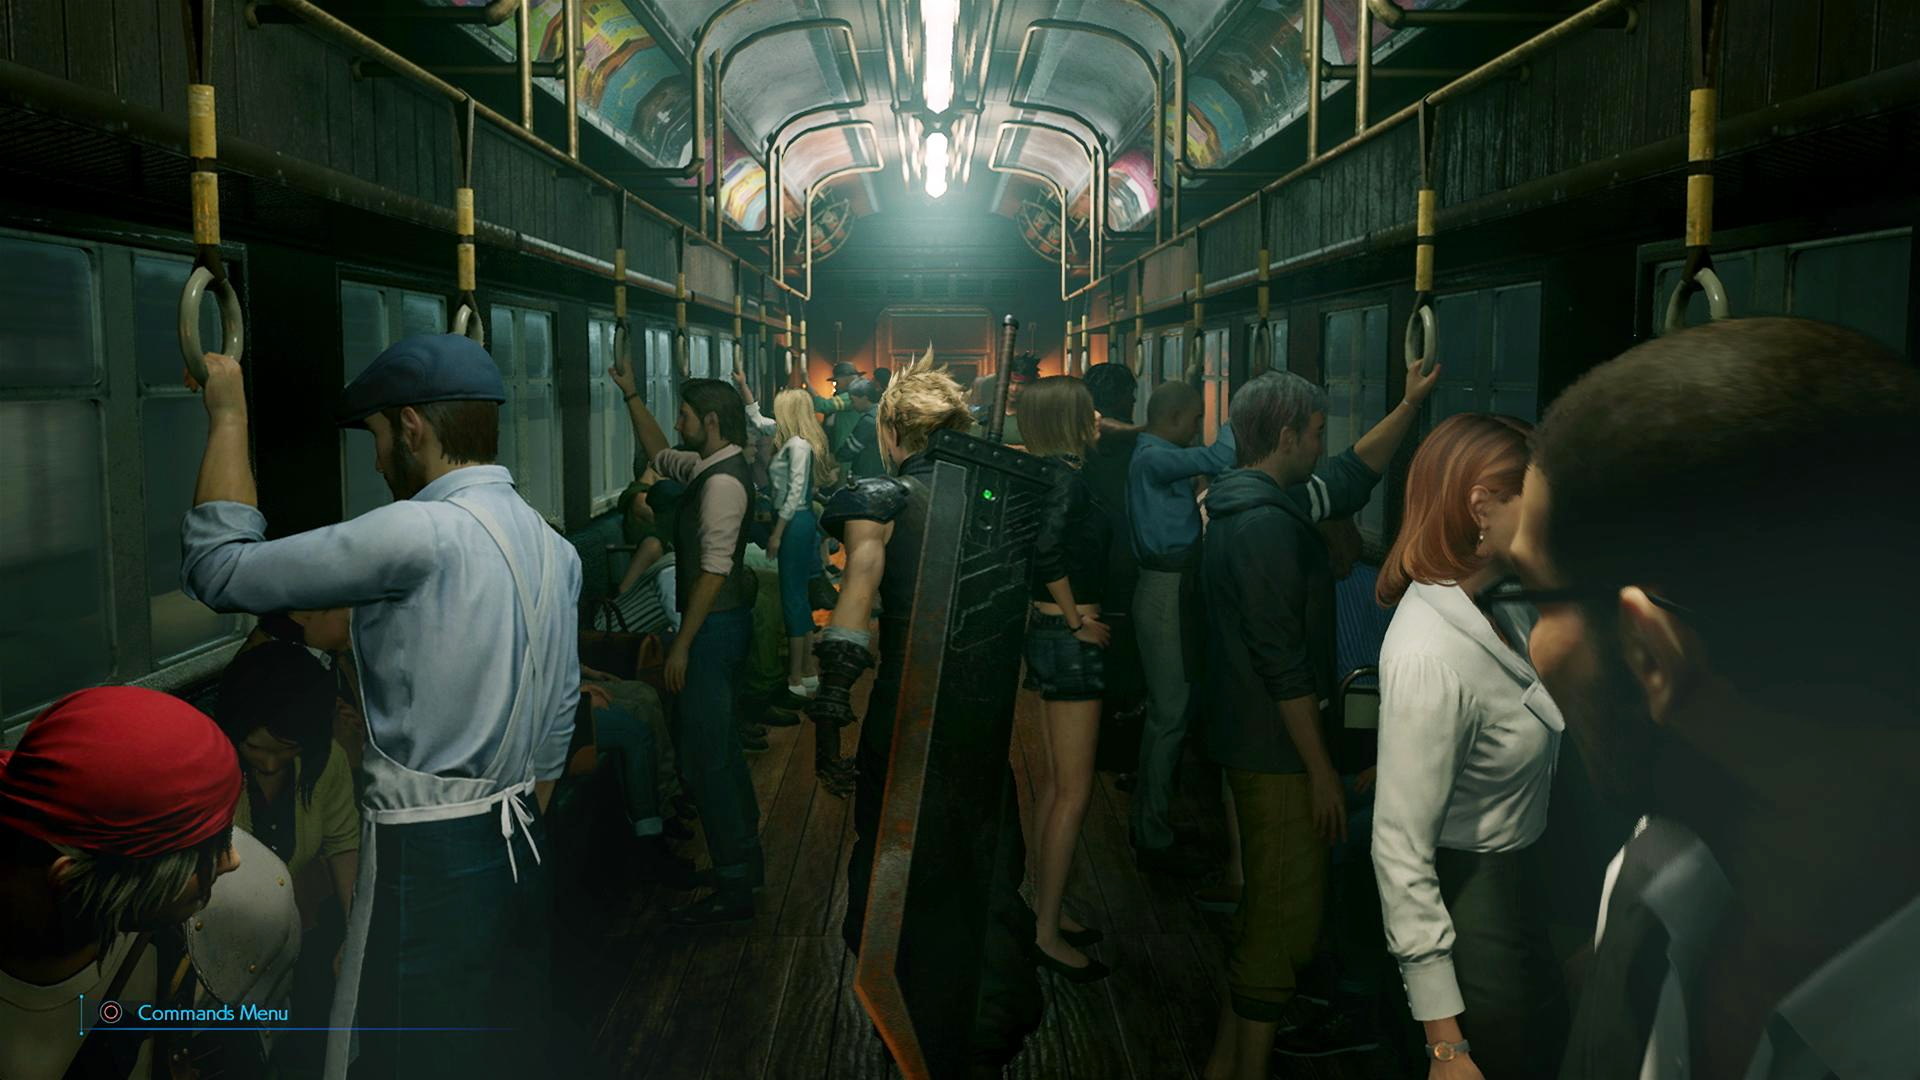 Final Fantasy Vii Remake A Key Art Reproduces The Original